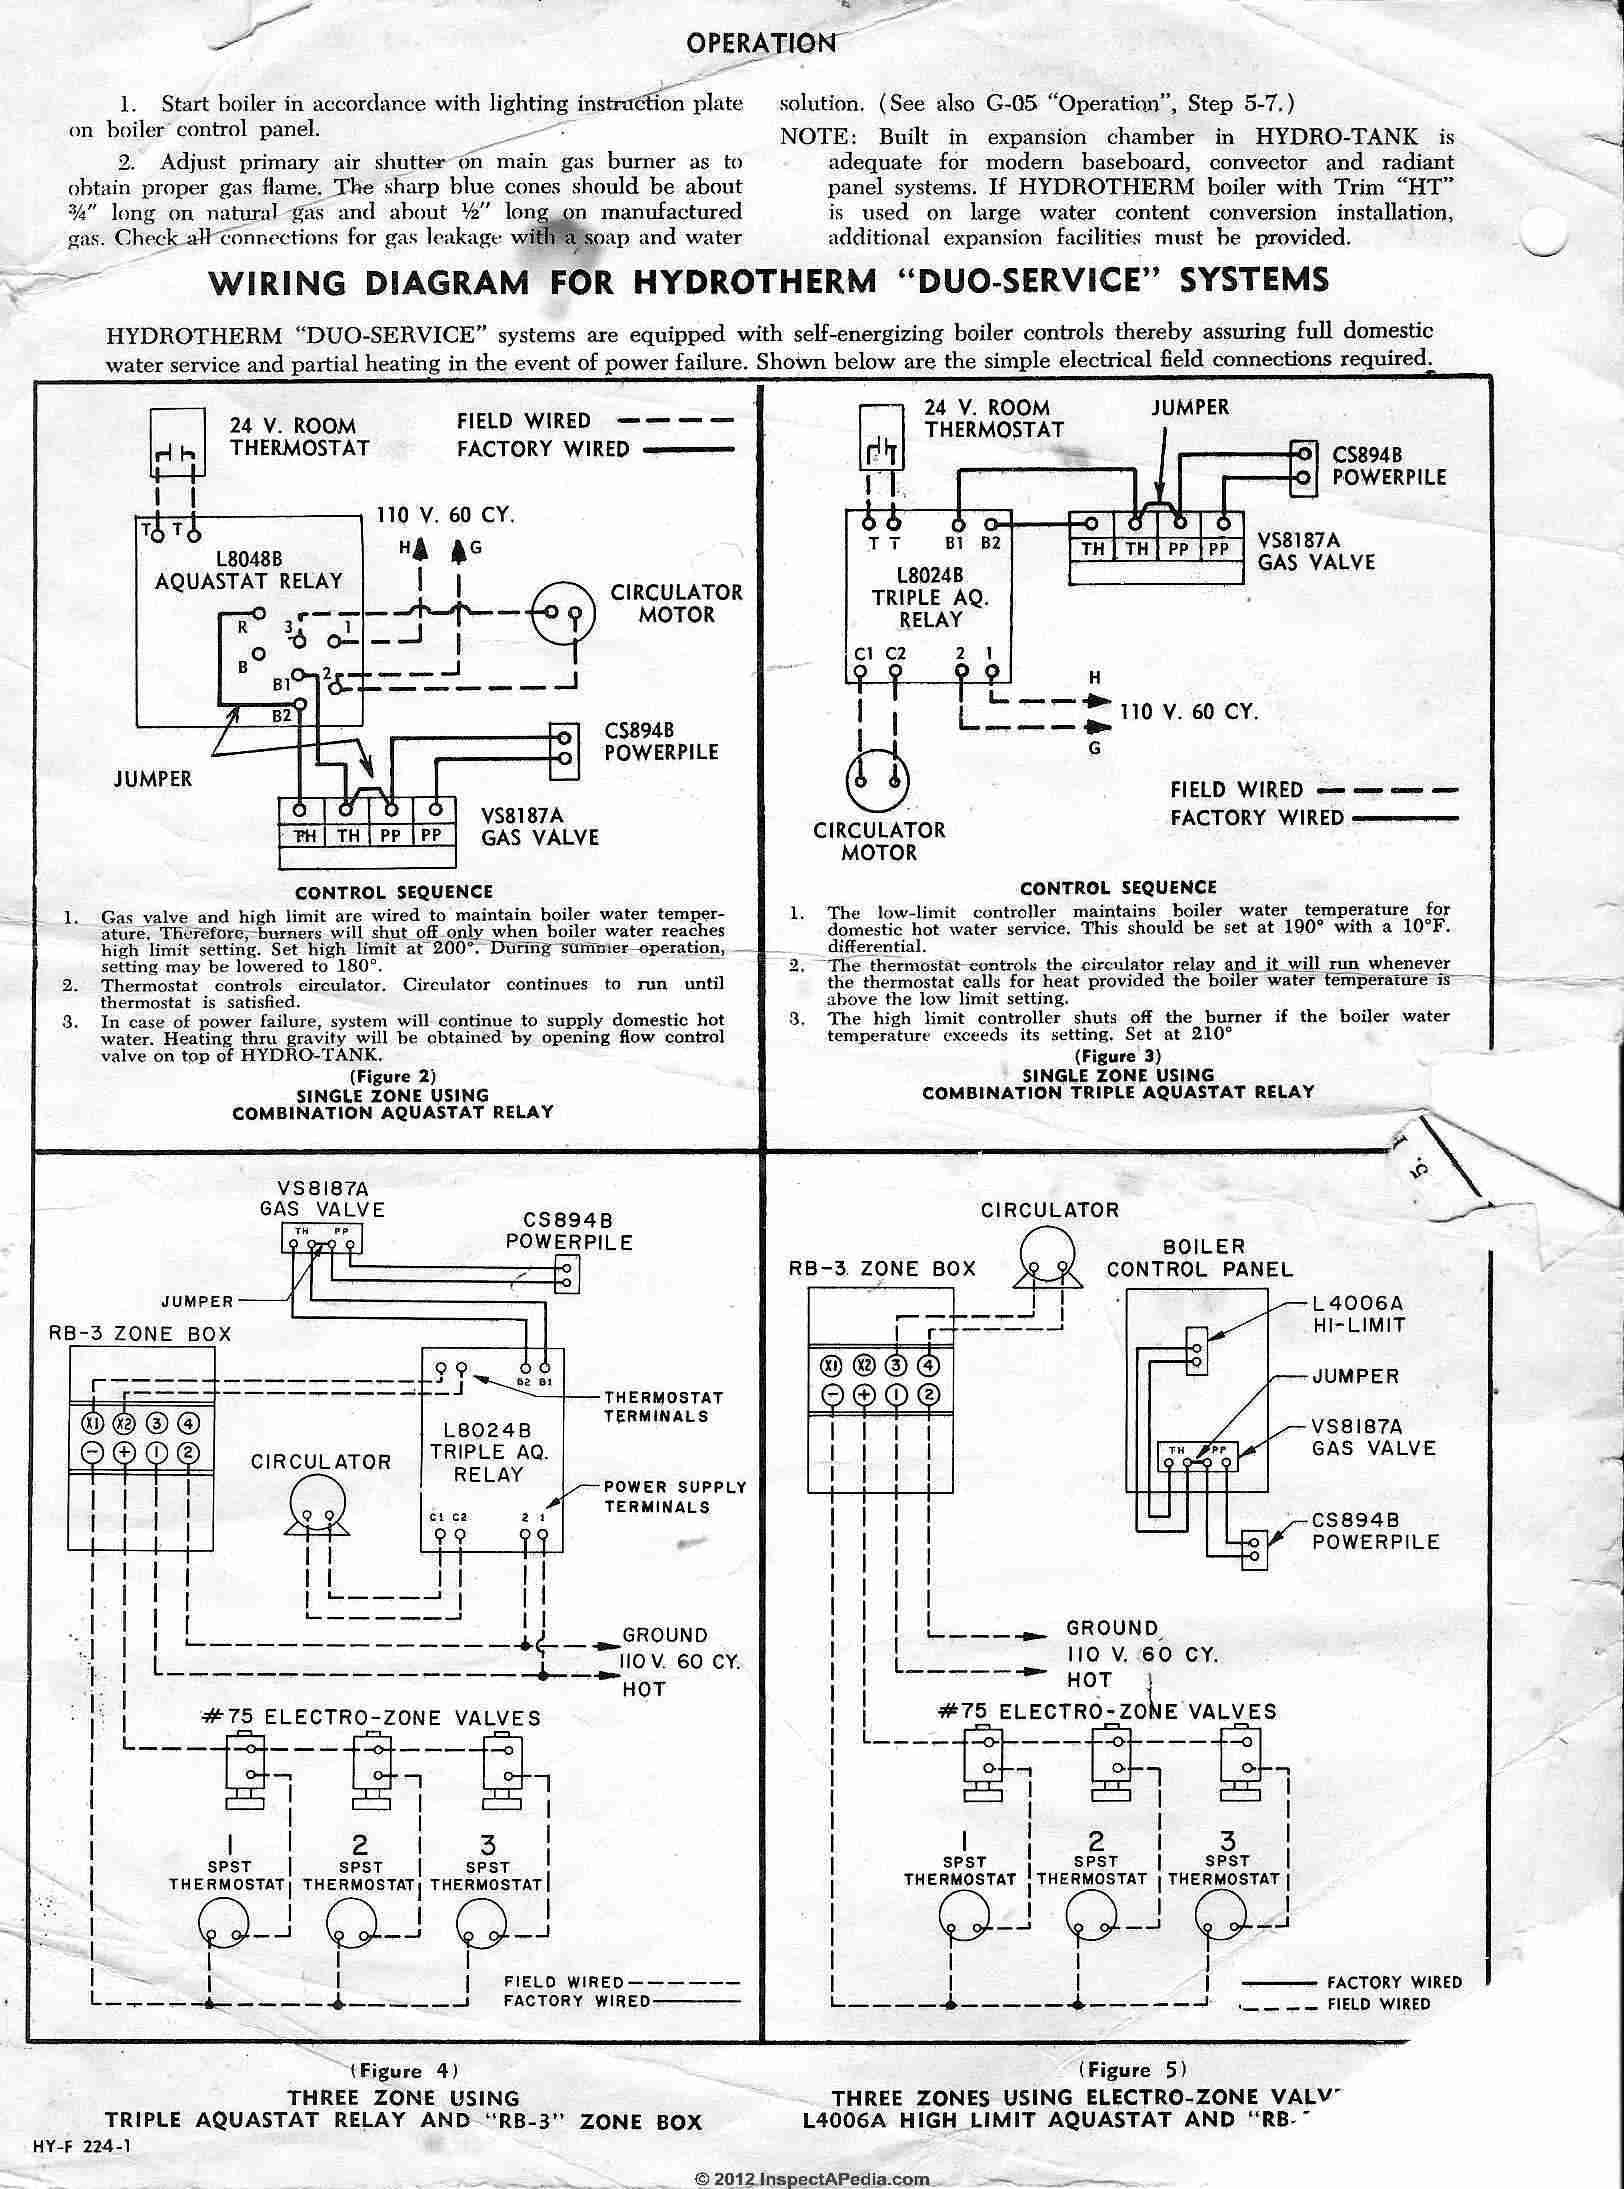 heating boiler aquastat control diagnosis, troubleshooting, repair Actuator Wiring Diagram